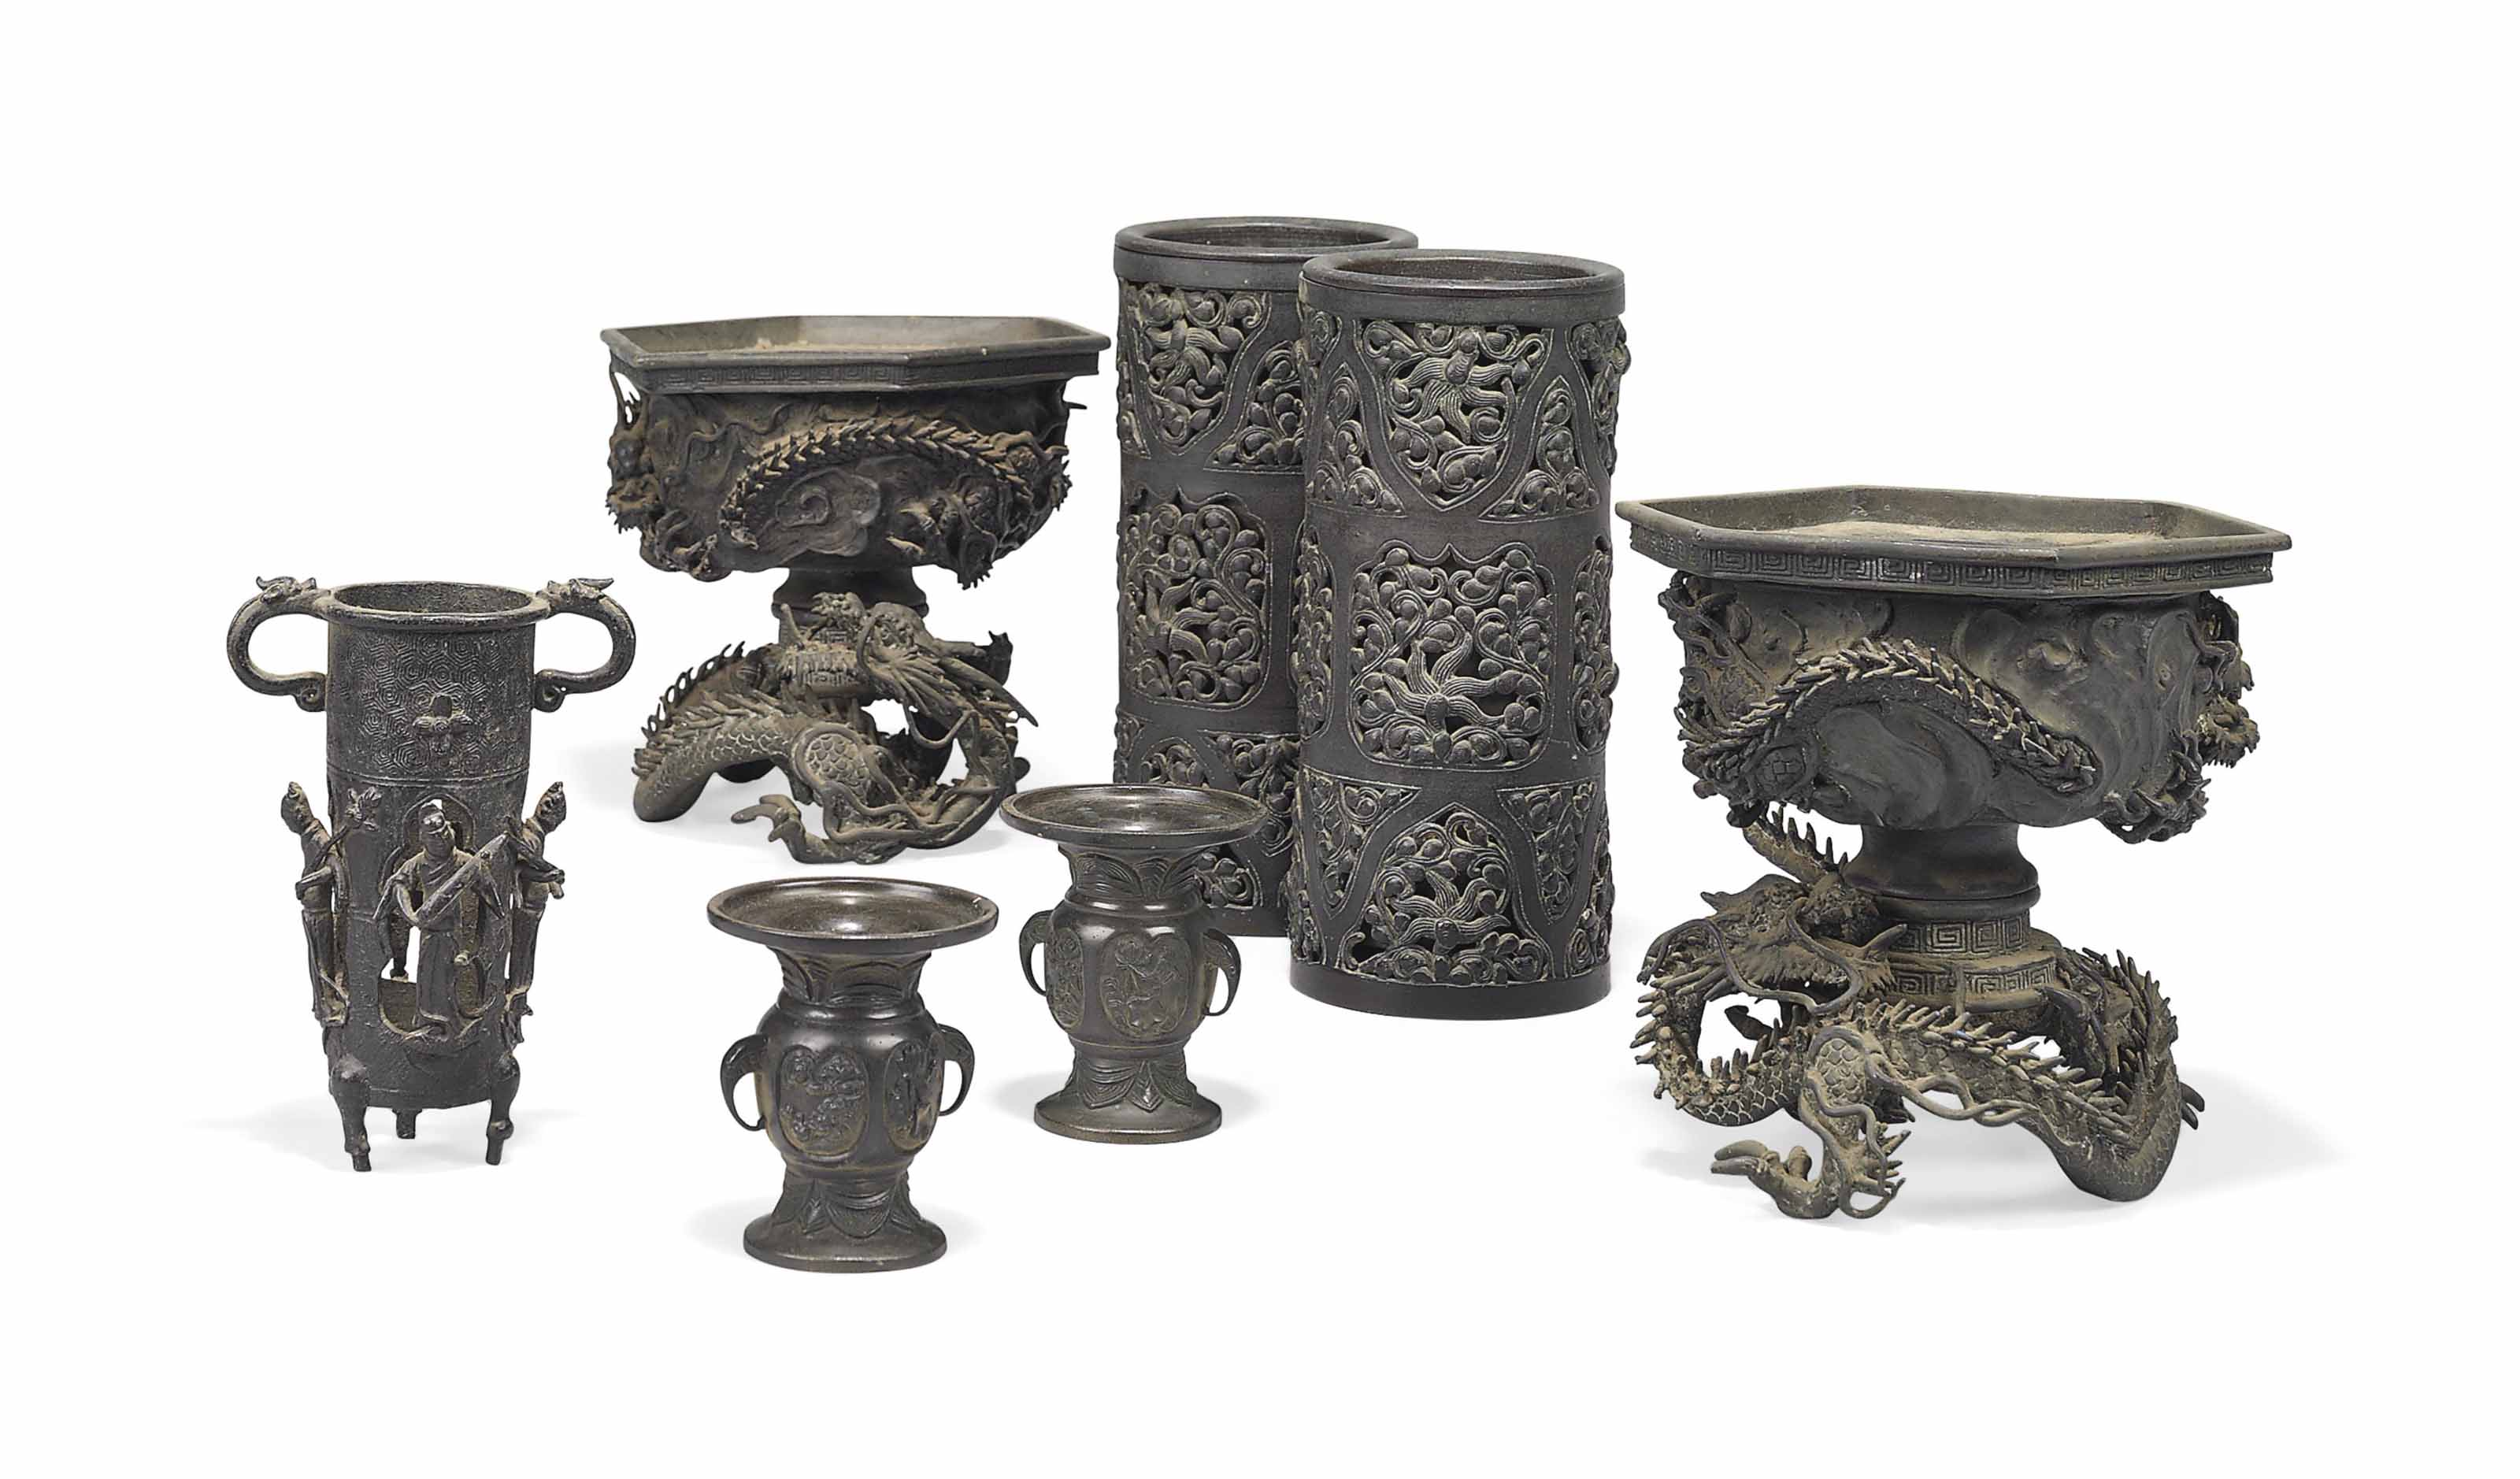 A Group of Asian Bronzes